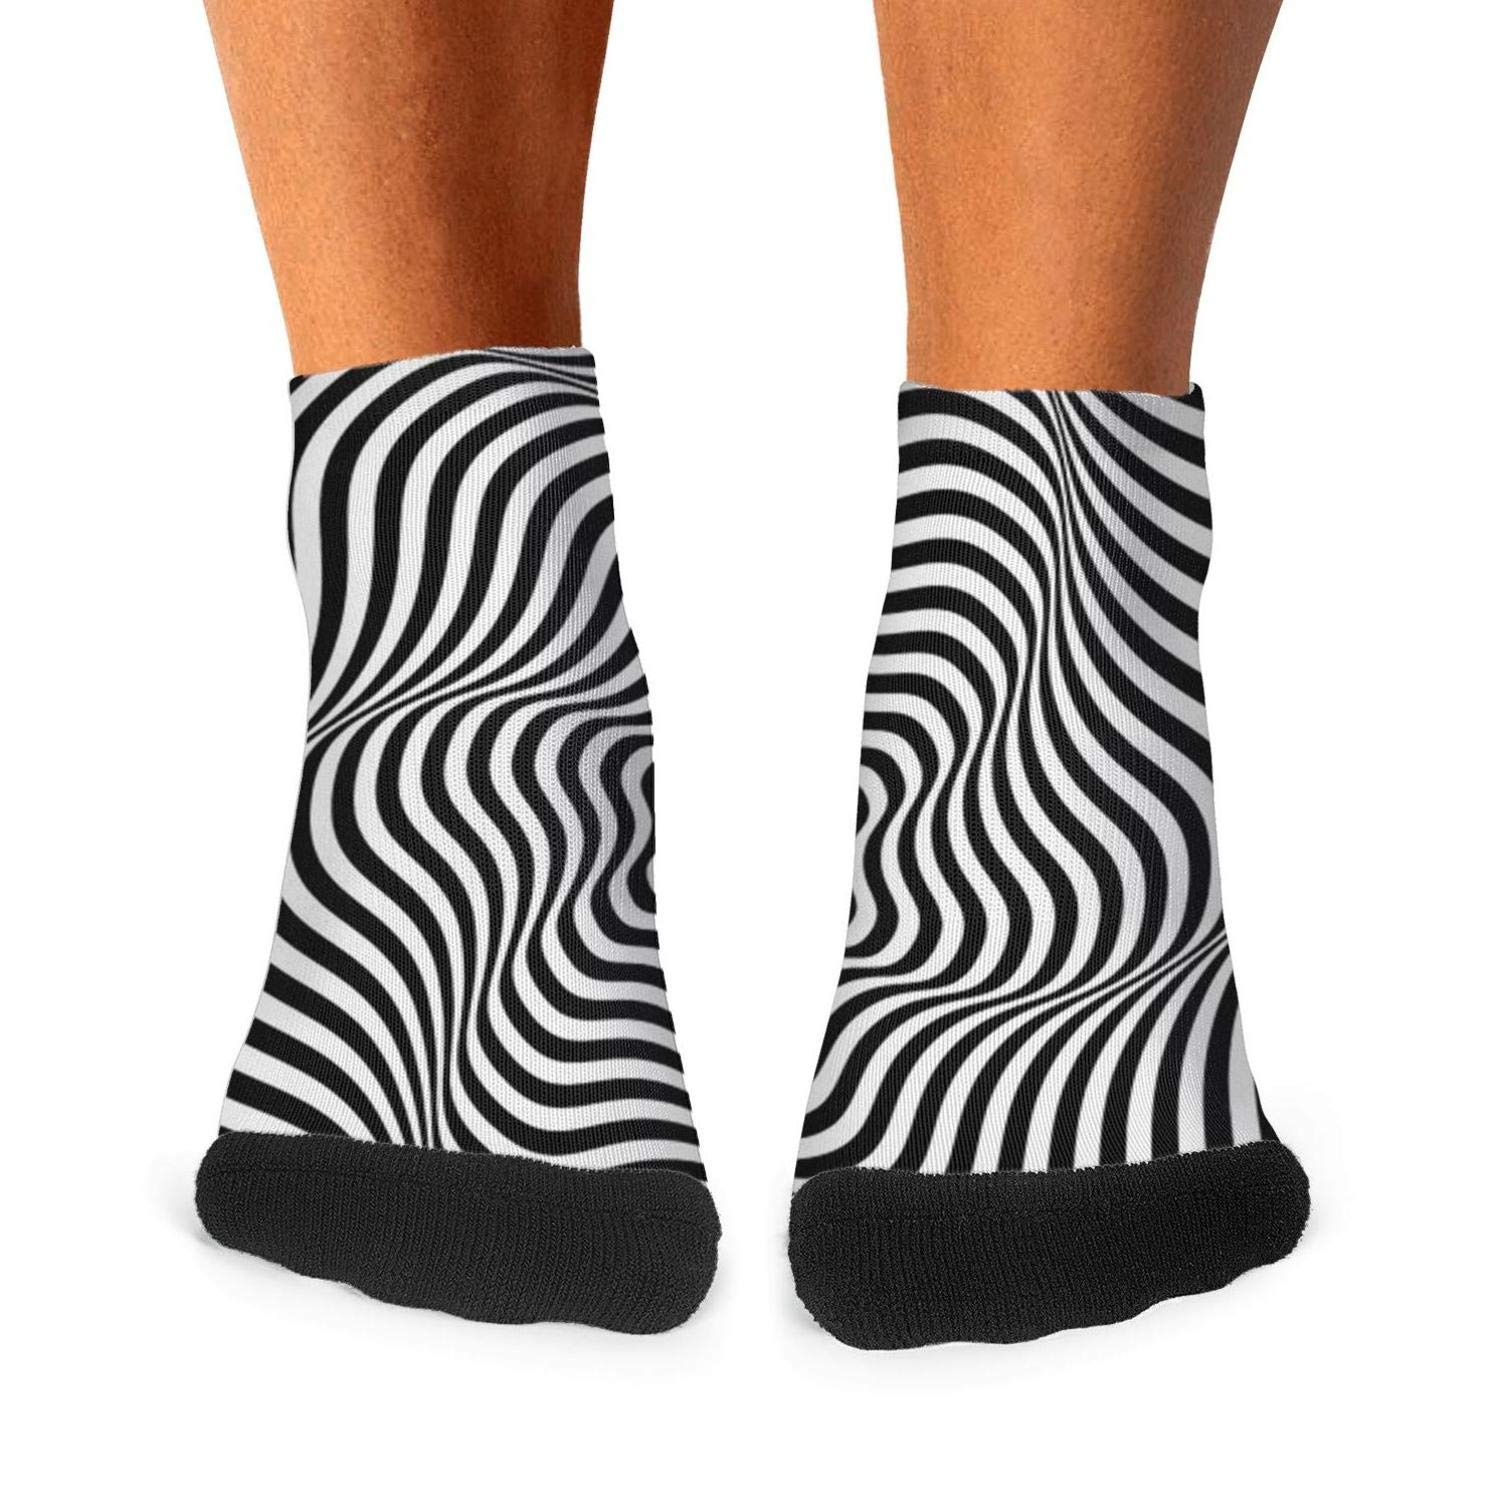 Mens Crazy Socks Designname Socks Athletic Dress Crew Socks For Soccer